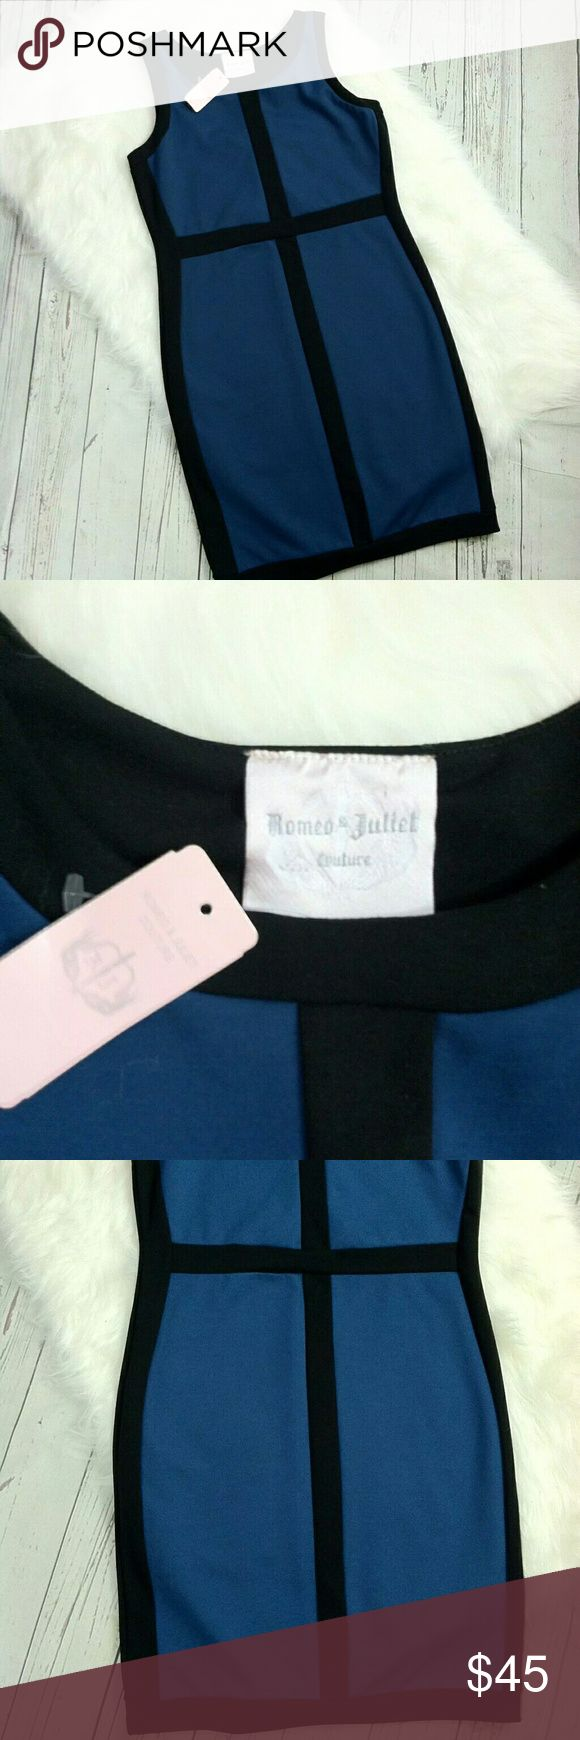 """Romeo & Juliet Couture Dress Sheath Sleeveless Romeo & Juliet Couture DressMedium SheathBlue BlackSleevelessCareer Style  Measurements pit to pit 17"""" length 35""""  New With Tags Romeo & Juliet Couture Dresses"""